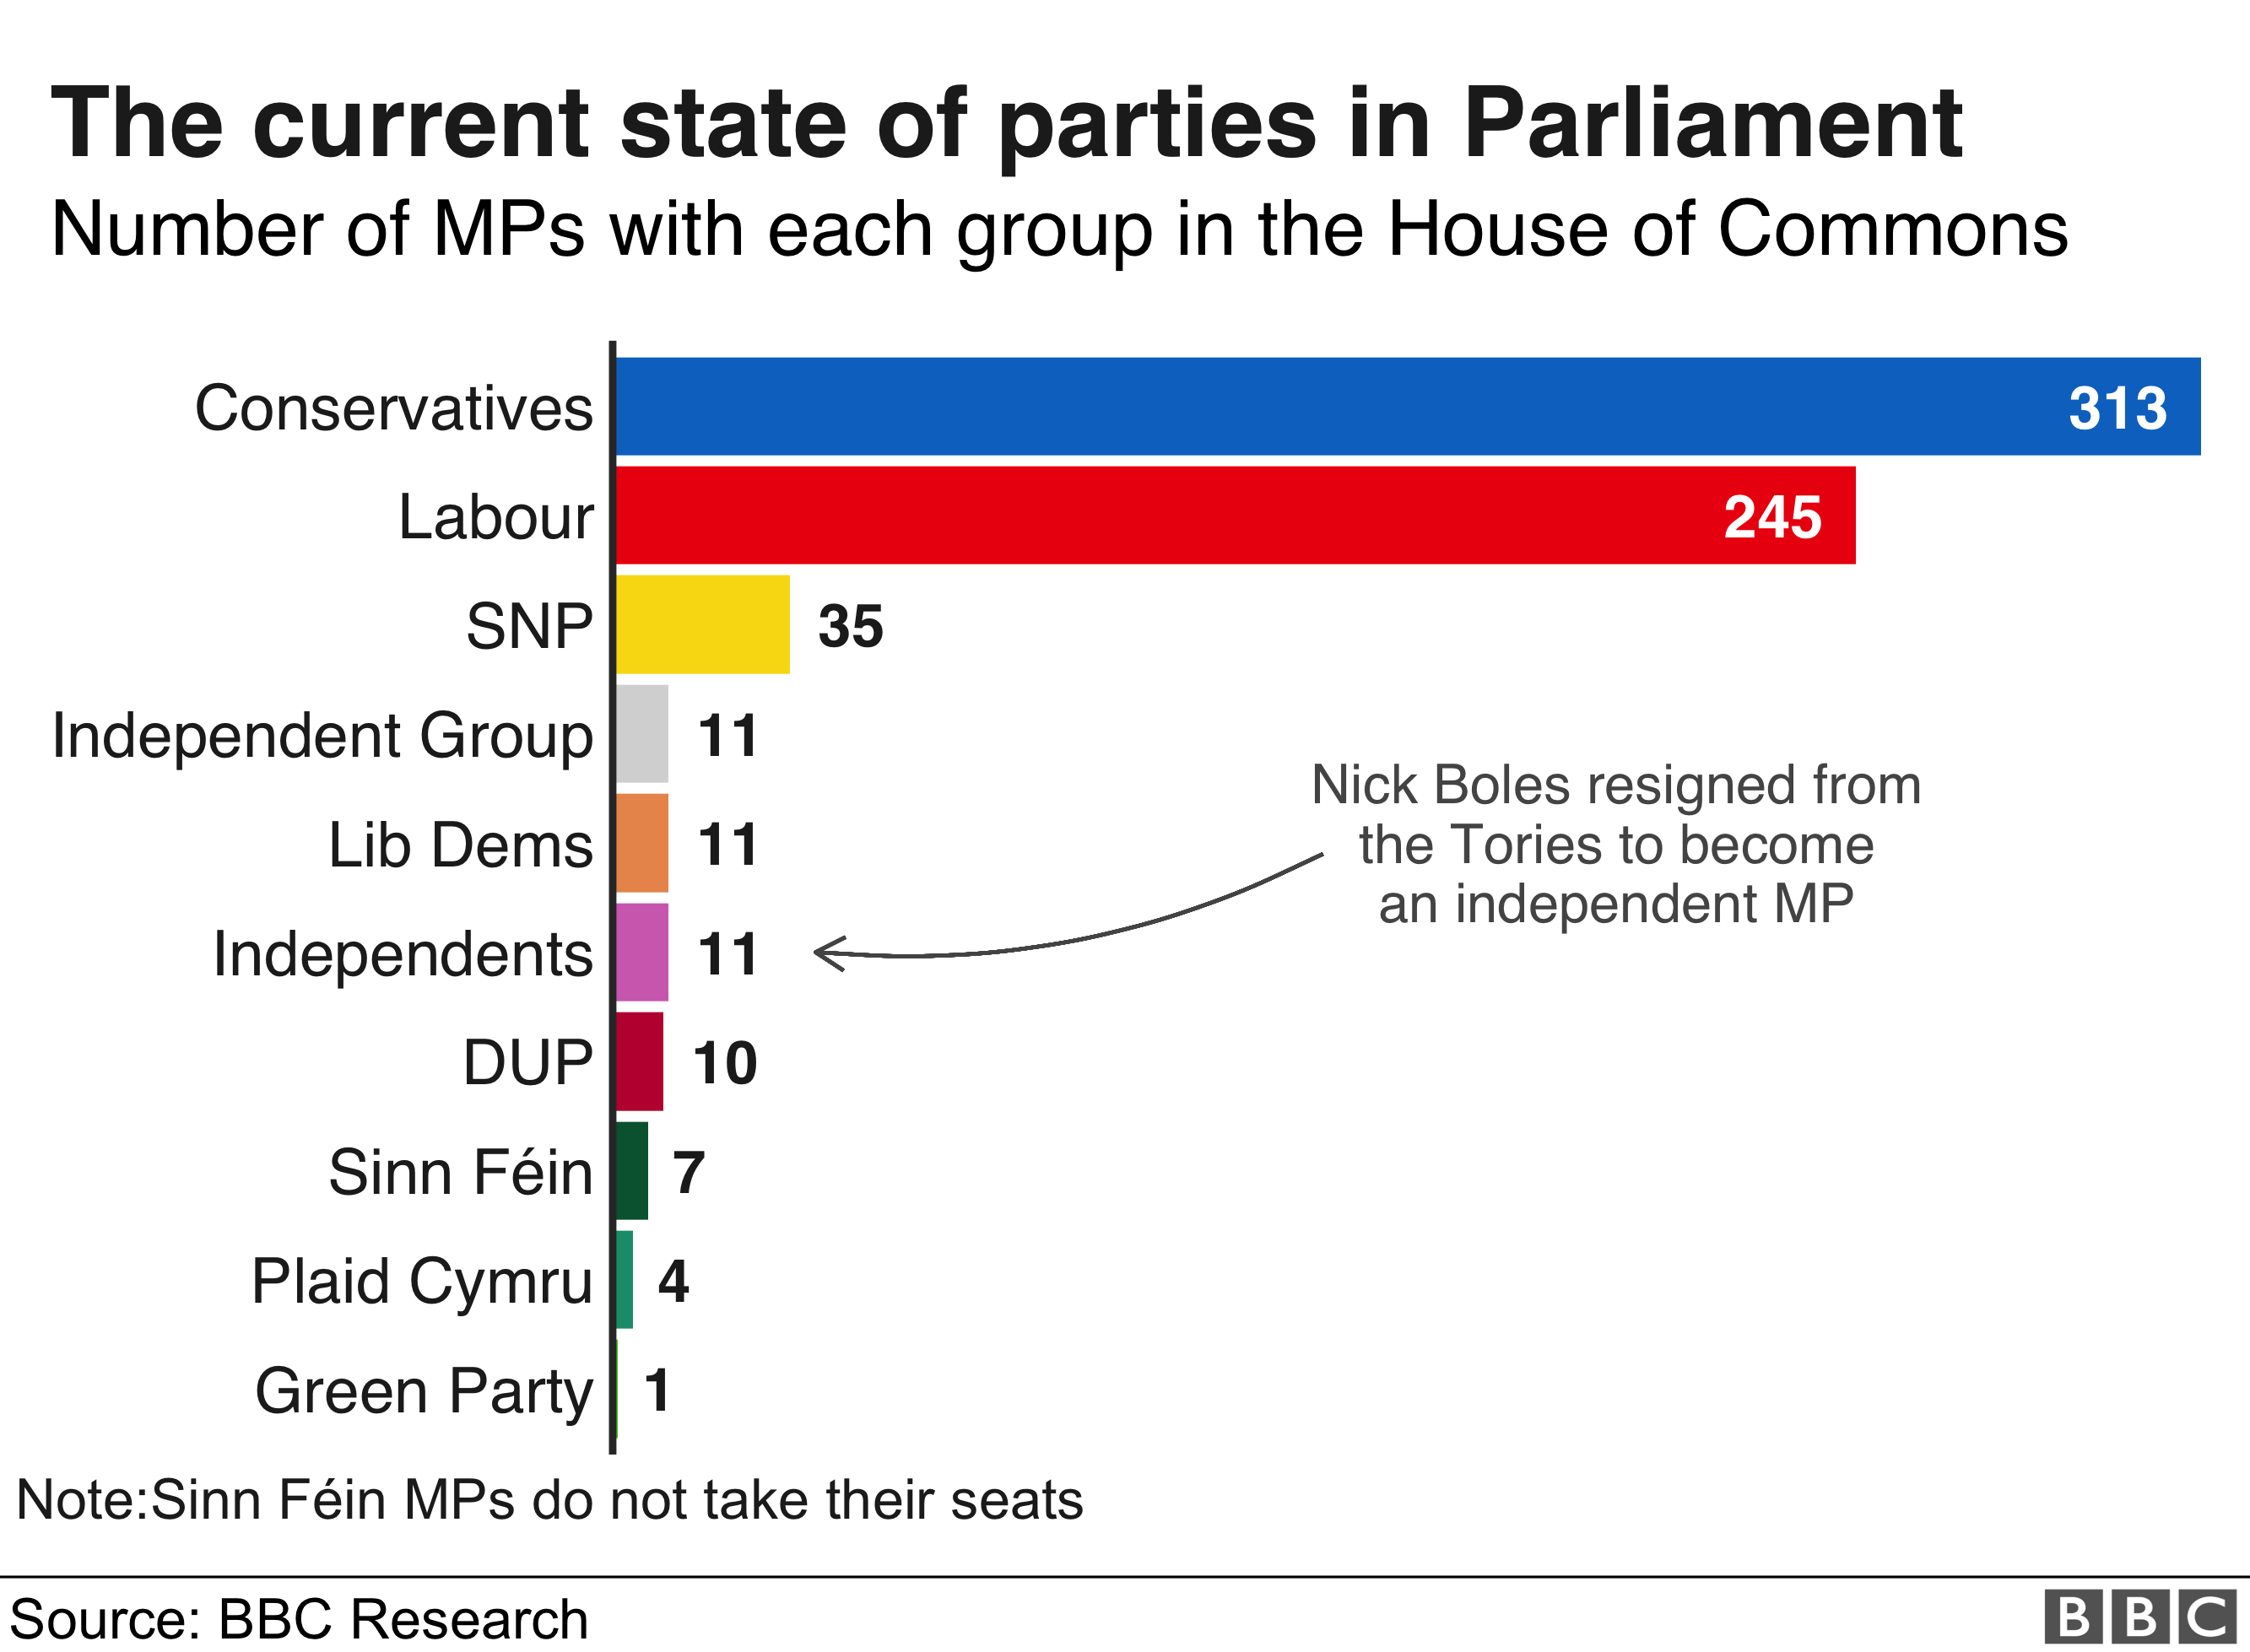 Graphic showing the number of MPs in each party